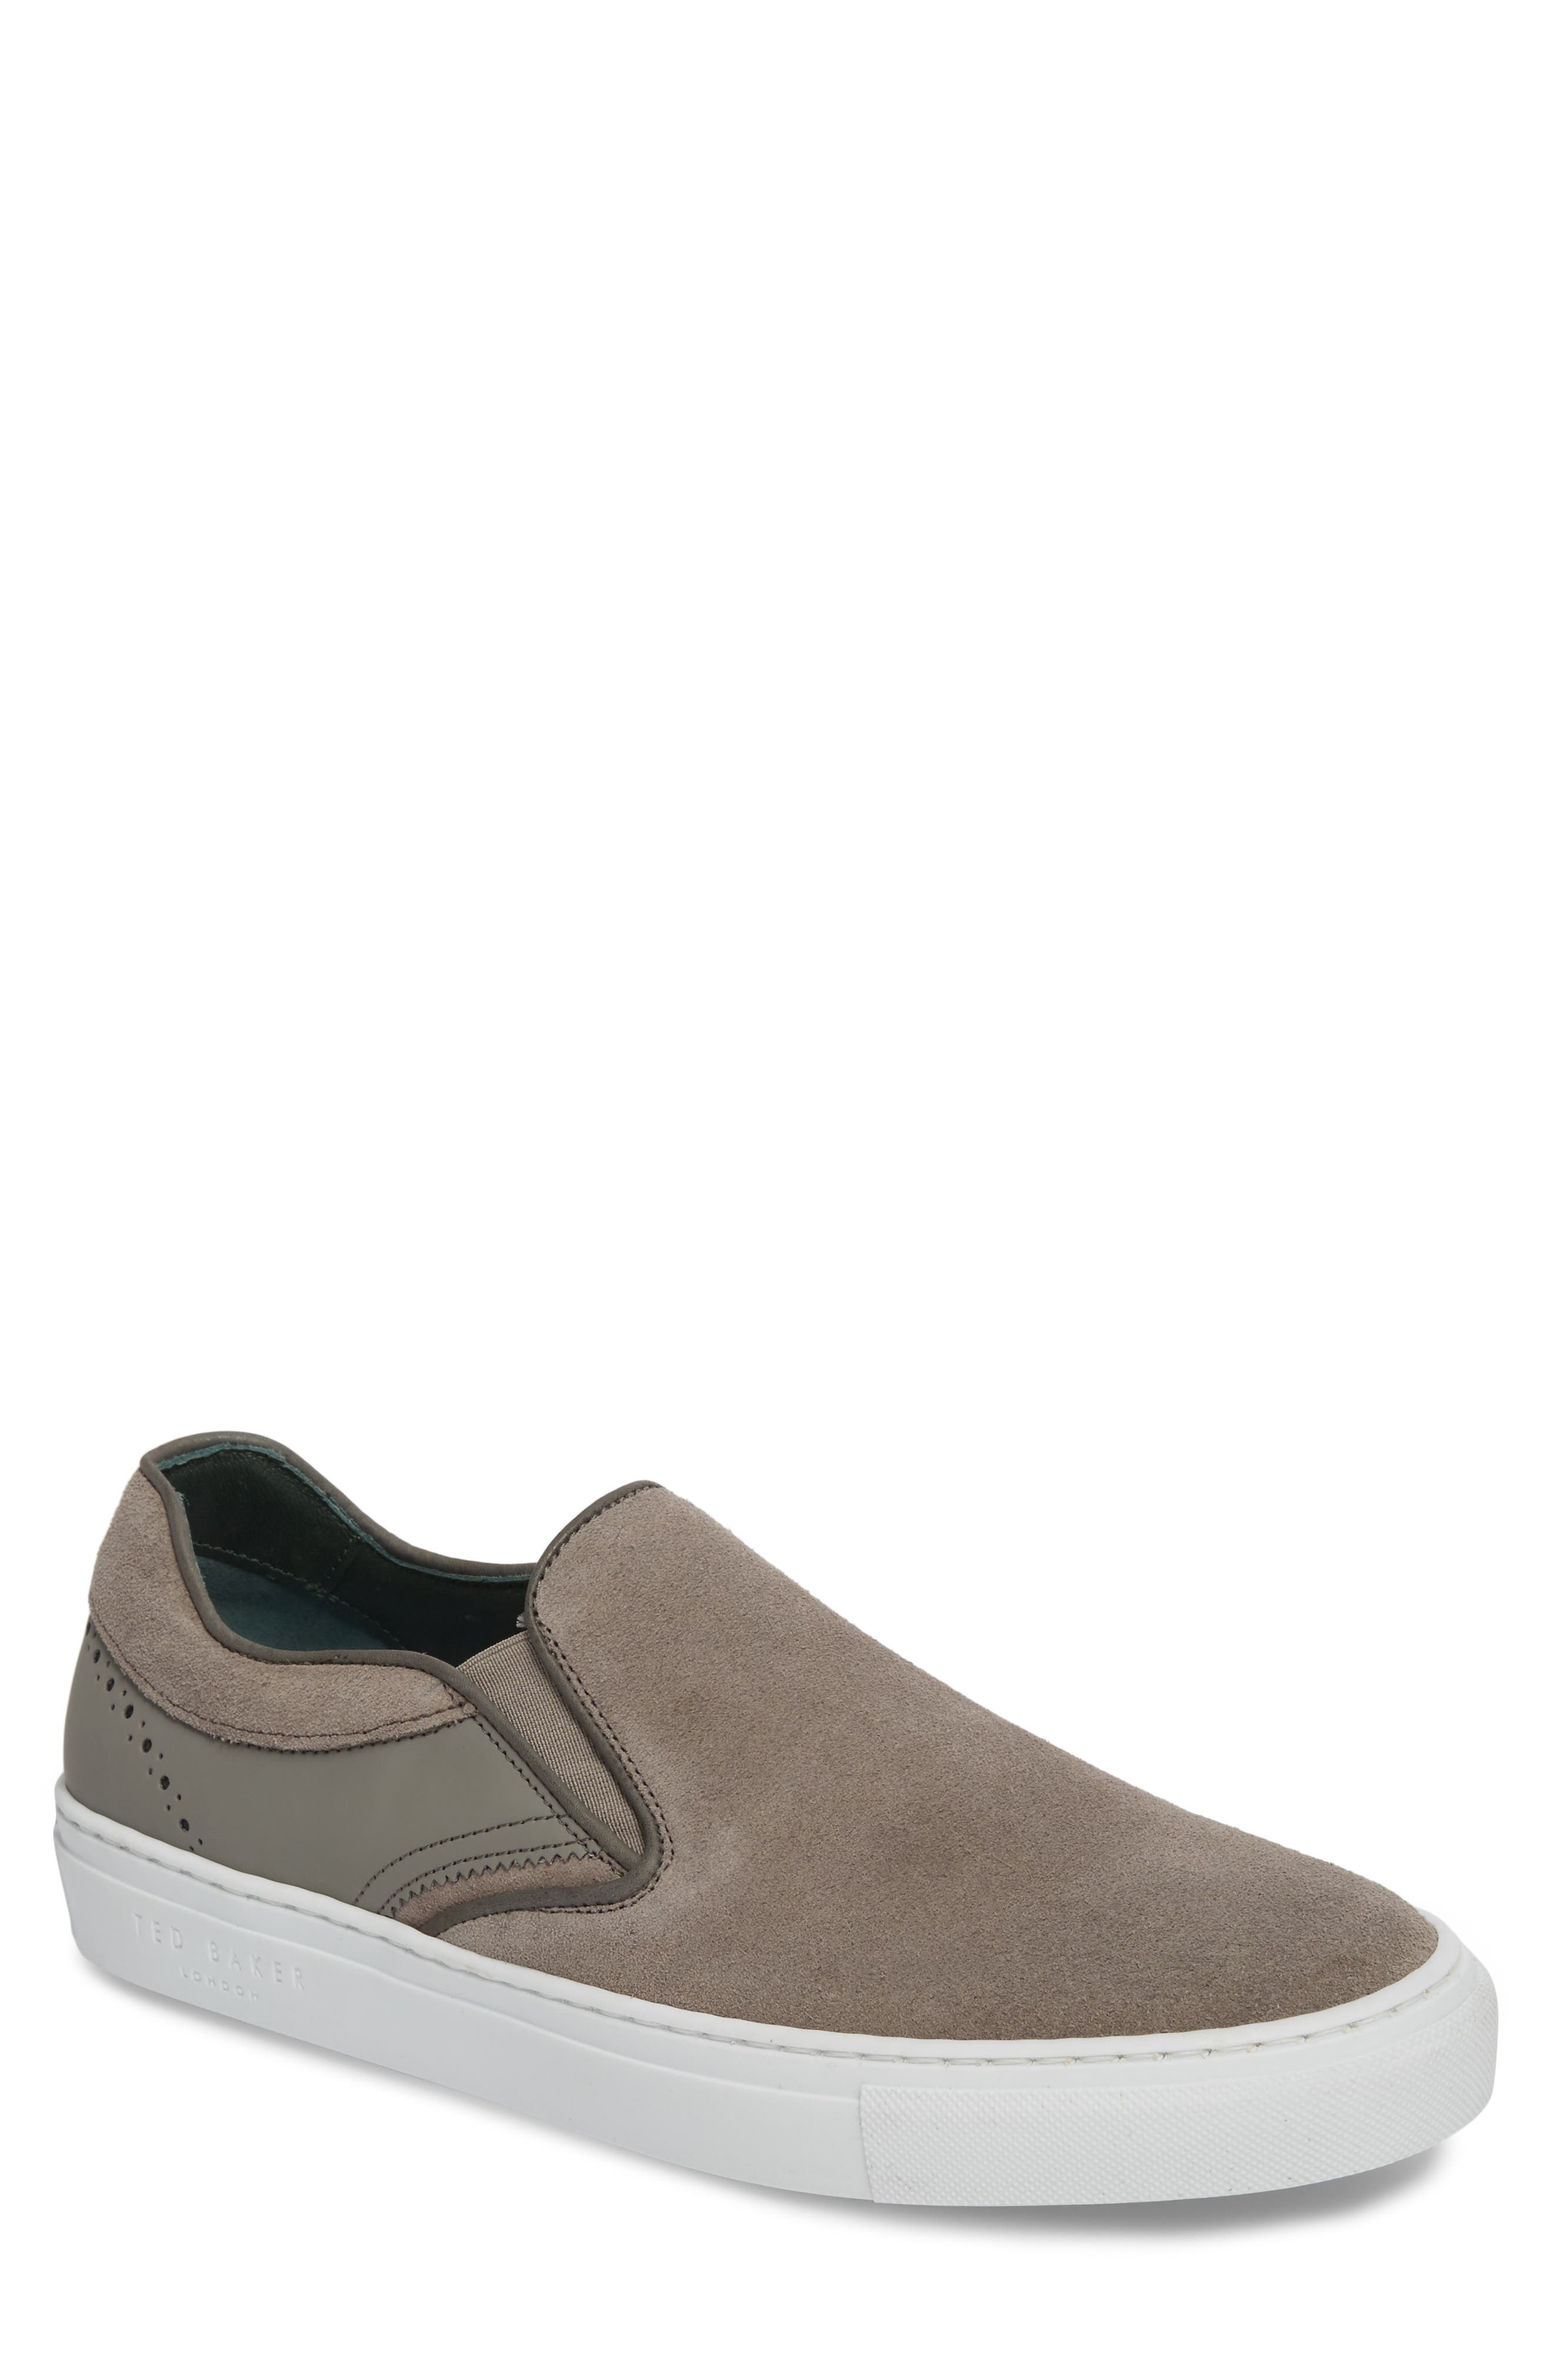 Reaine Brogued Slip-On Sneaker,                             Main thumbnail 1, color,                             LIGHT GREY LEATHER